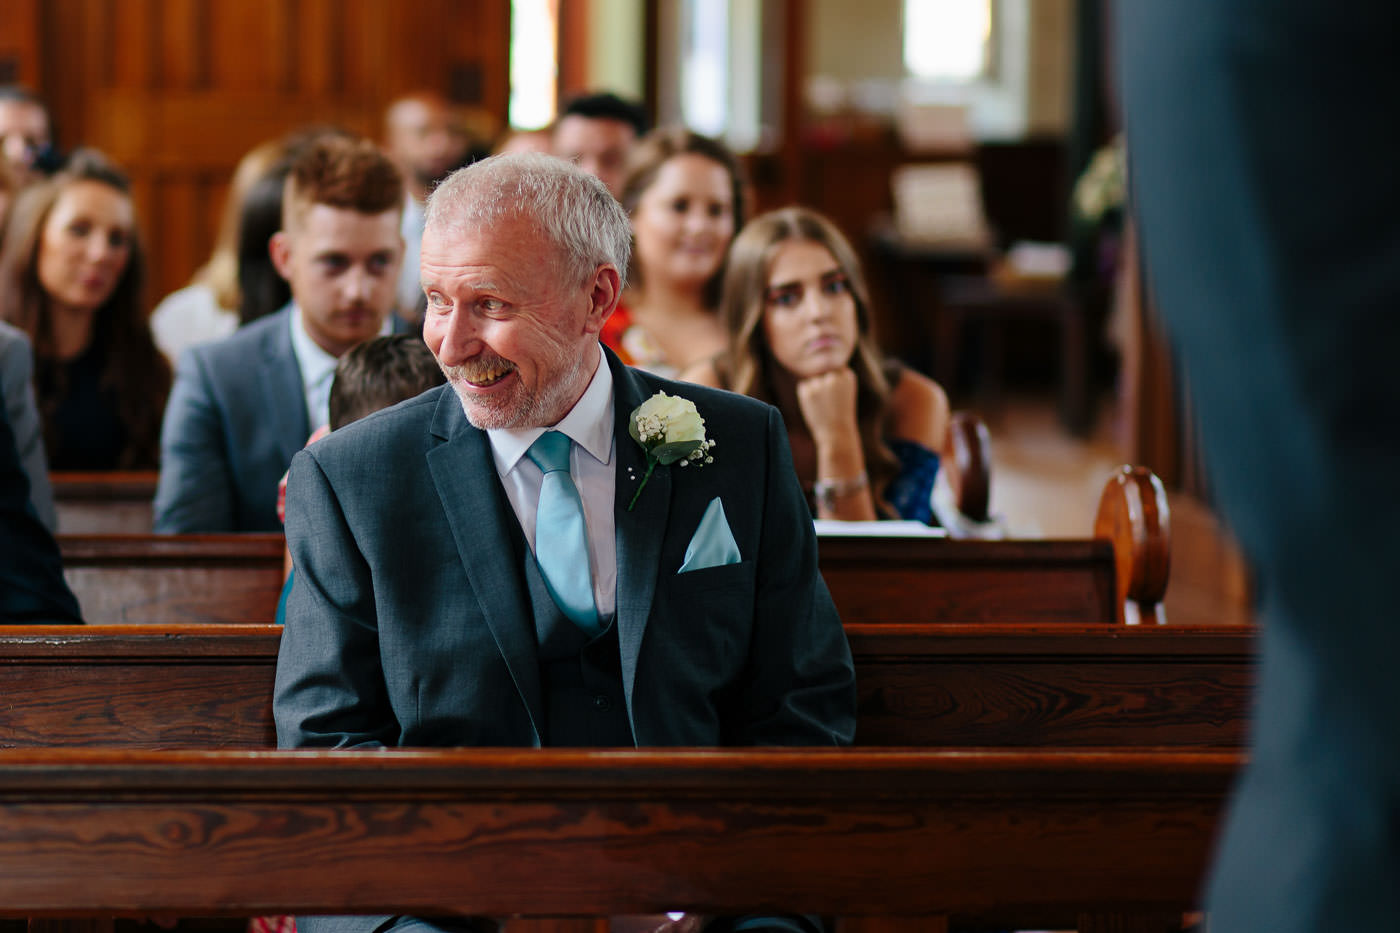 groomsman smiling during the church wedding ceremony